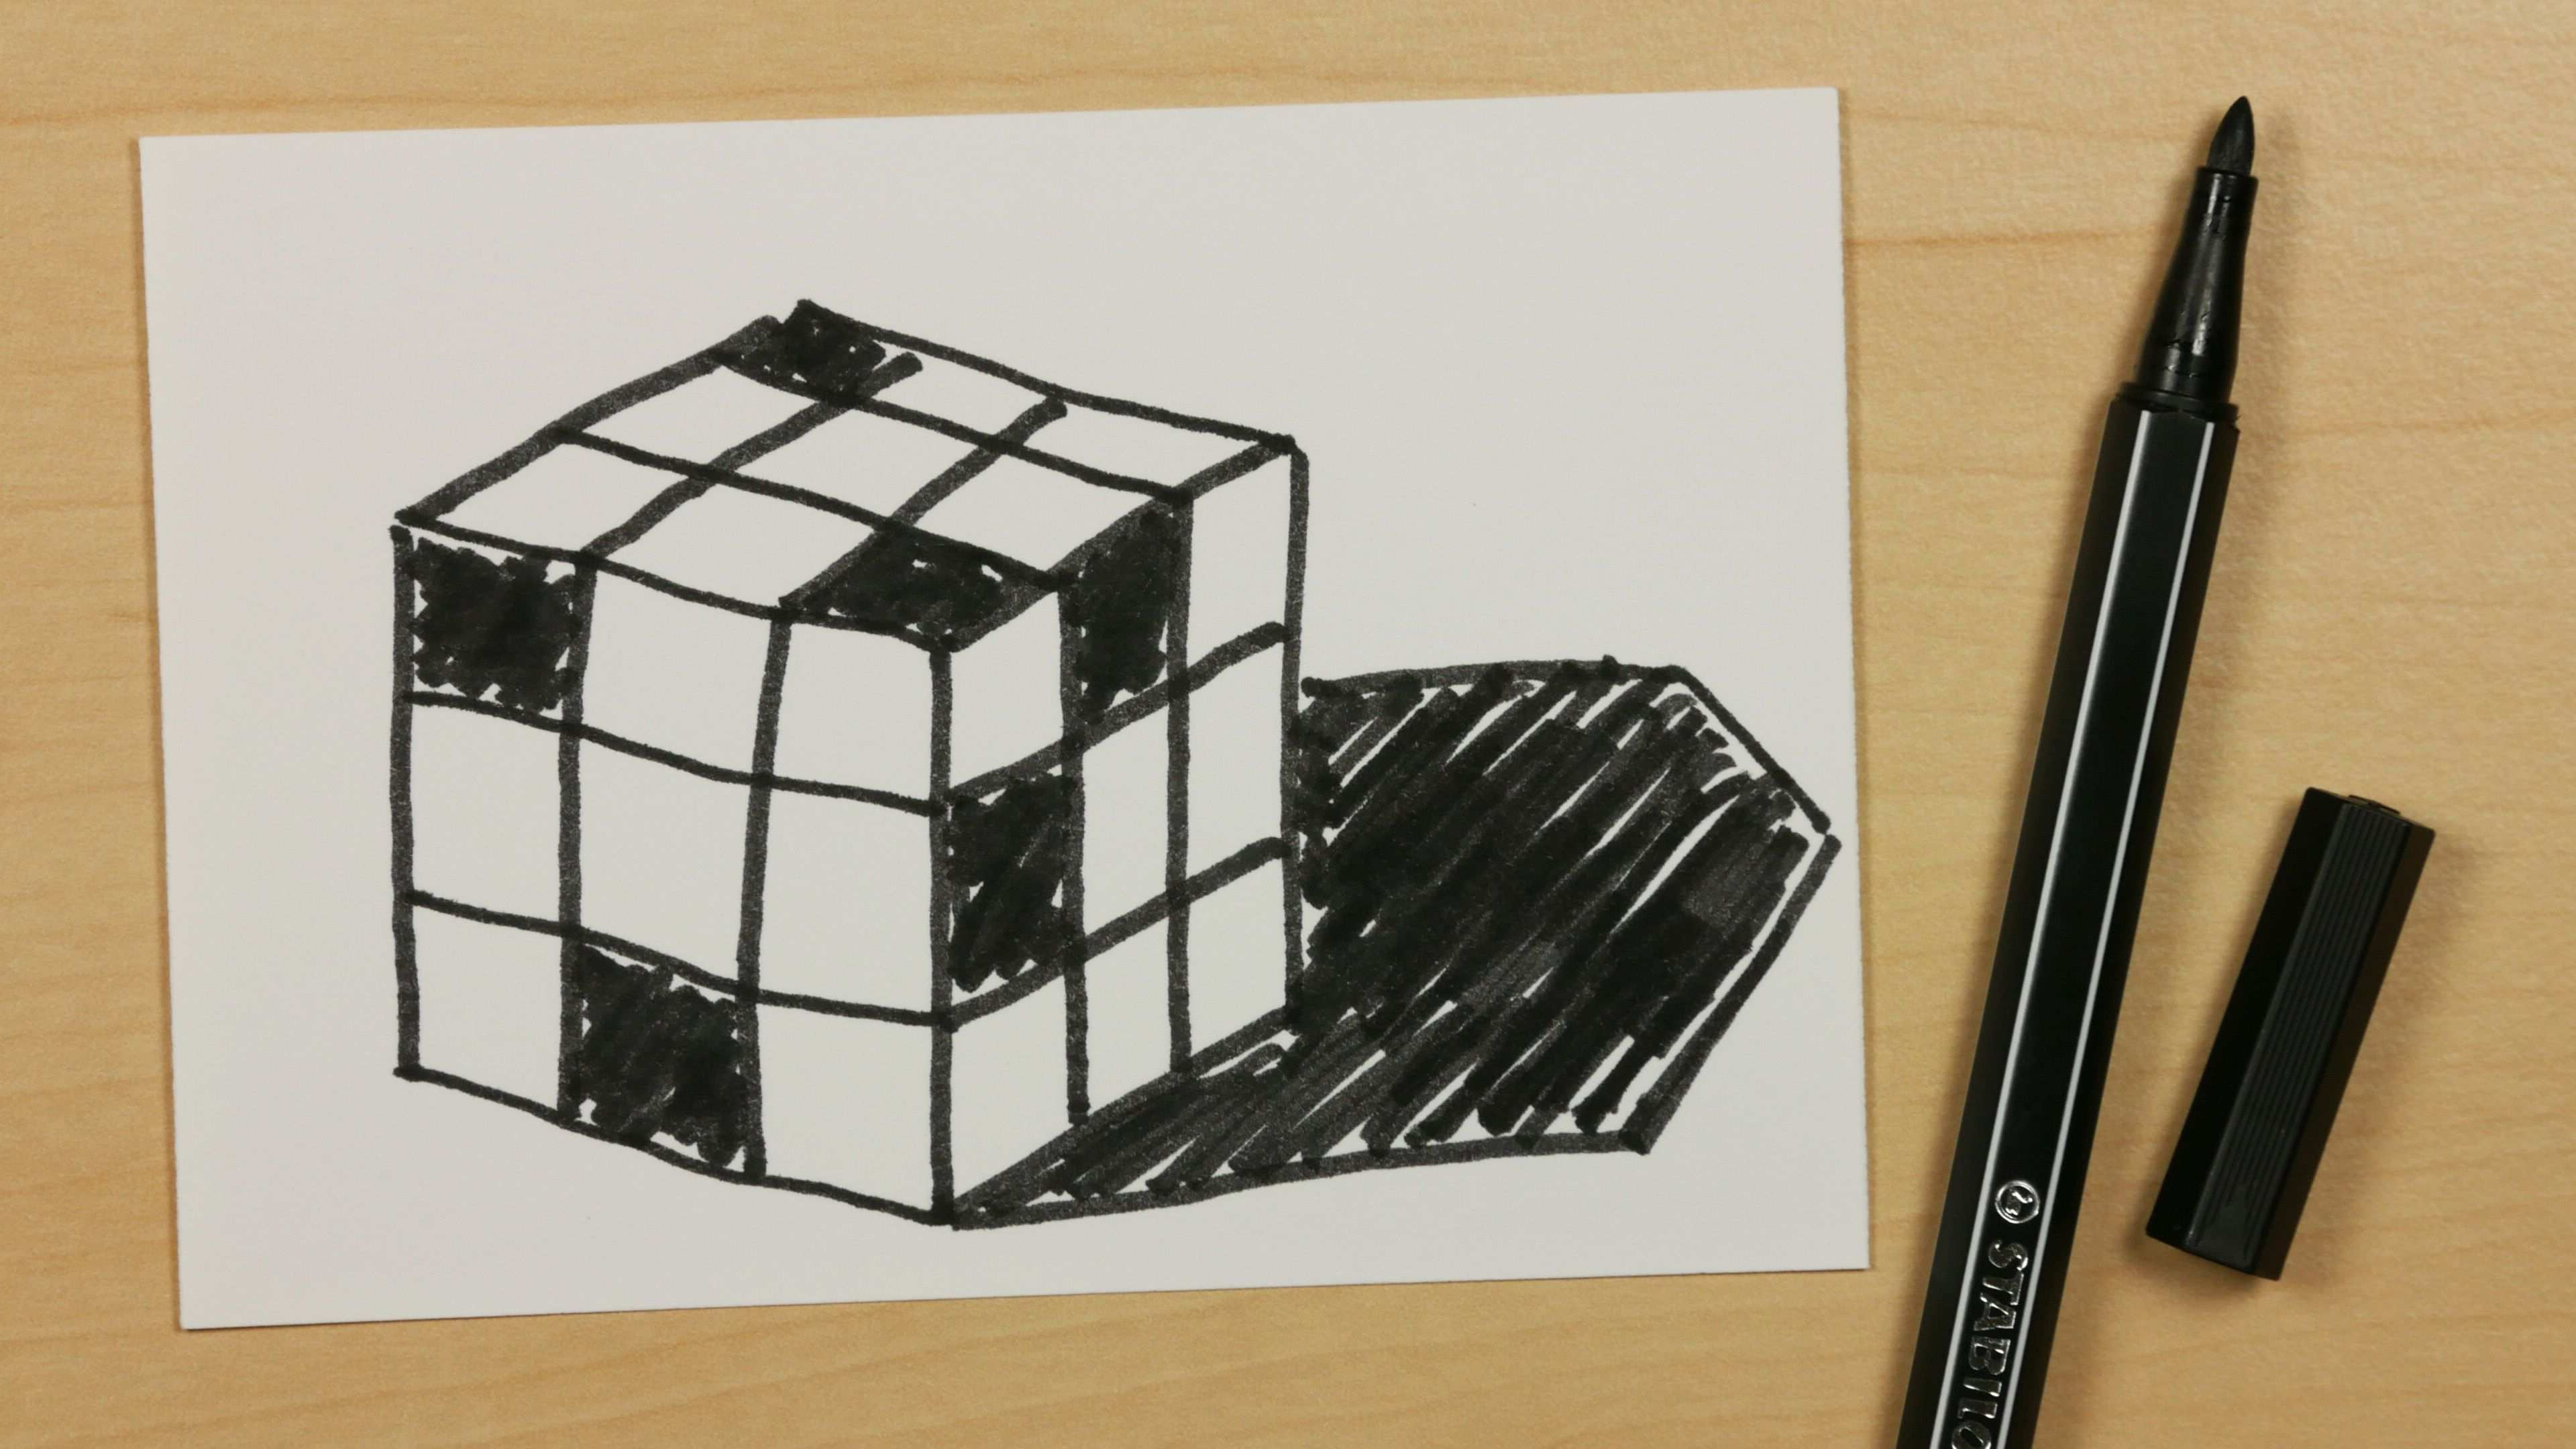 How To Draw A Rubik S Cube Easy Cartoon Doodle For Kids 86 Https Youtu Be K42zijubb7w Subscribe Https Www Youtu Simple Cartoon Rubiks Cube Doodles